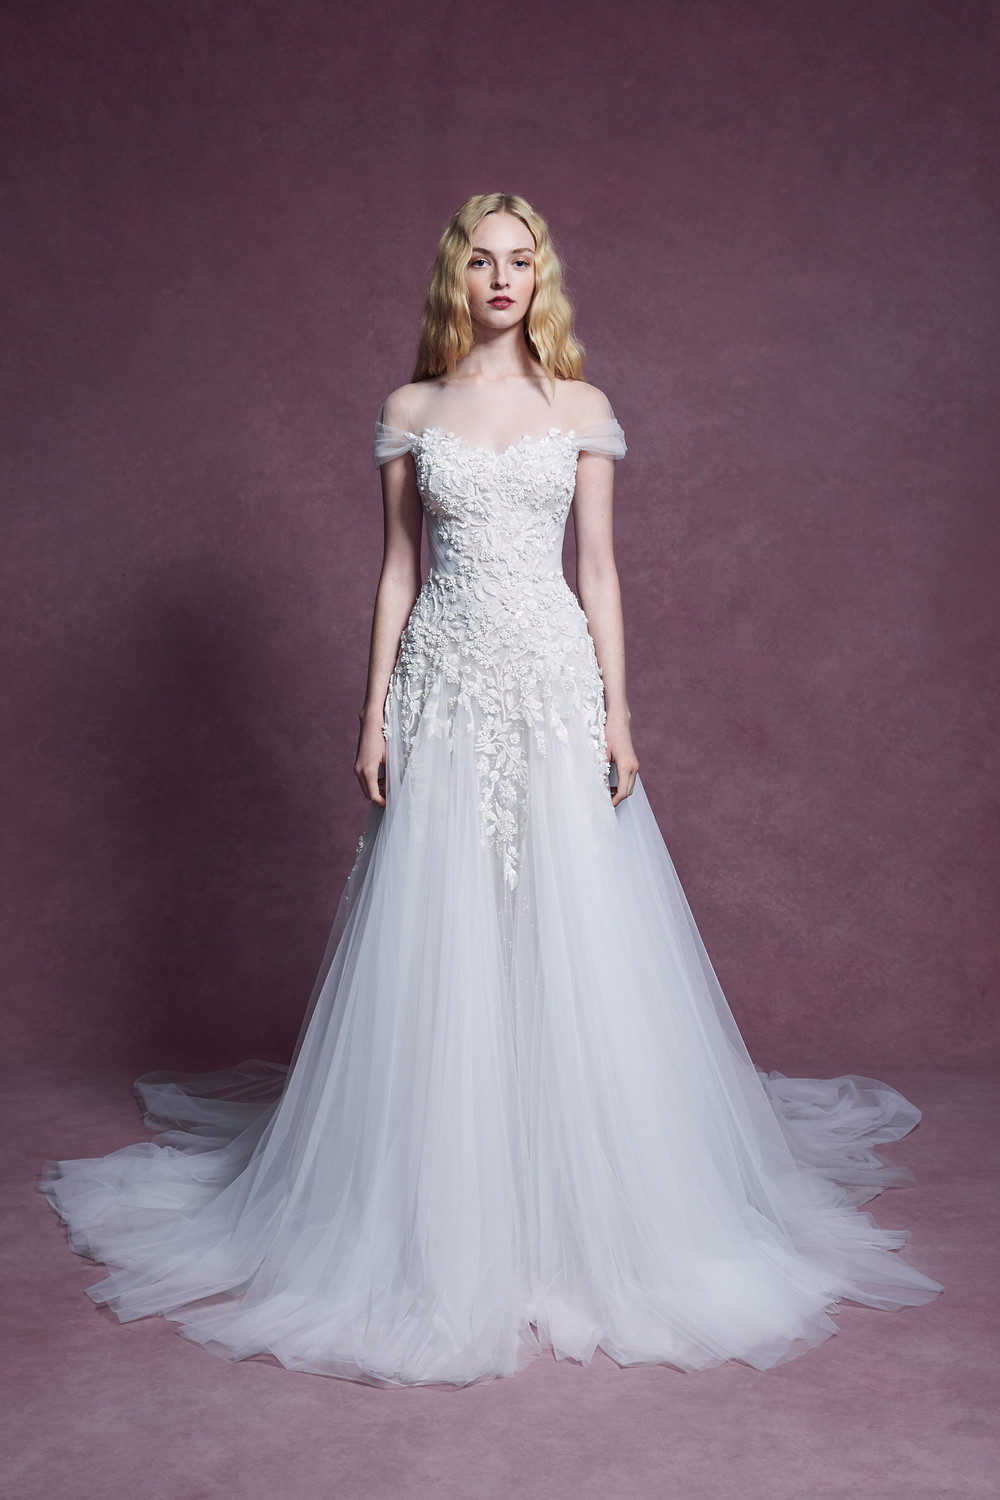 A Marchesa 2020 off the shoulder A-line wedding dress with tulle skirt, lace bodice and beading and embroidery